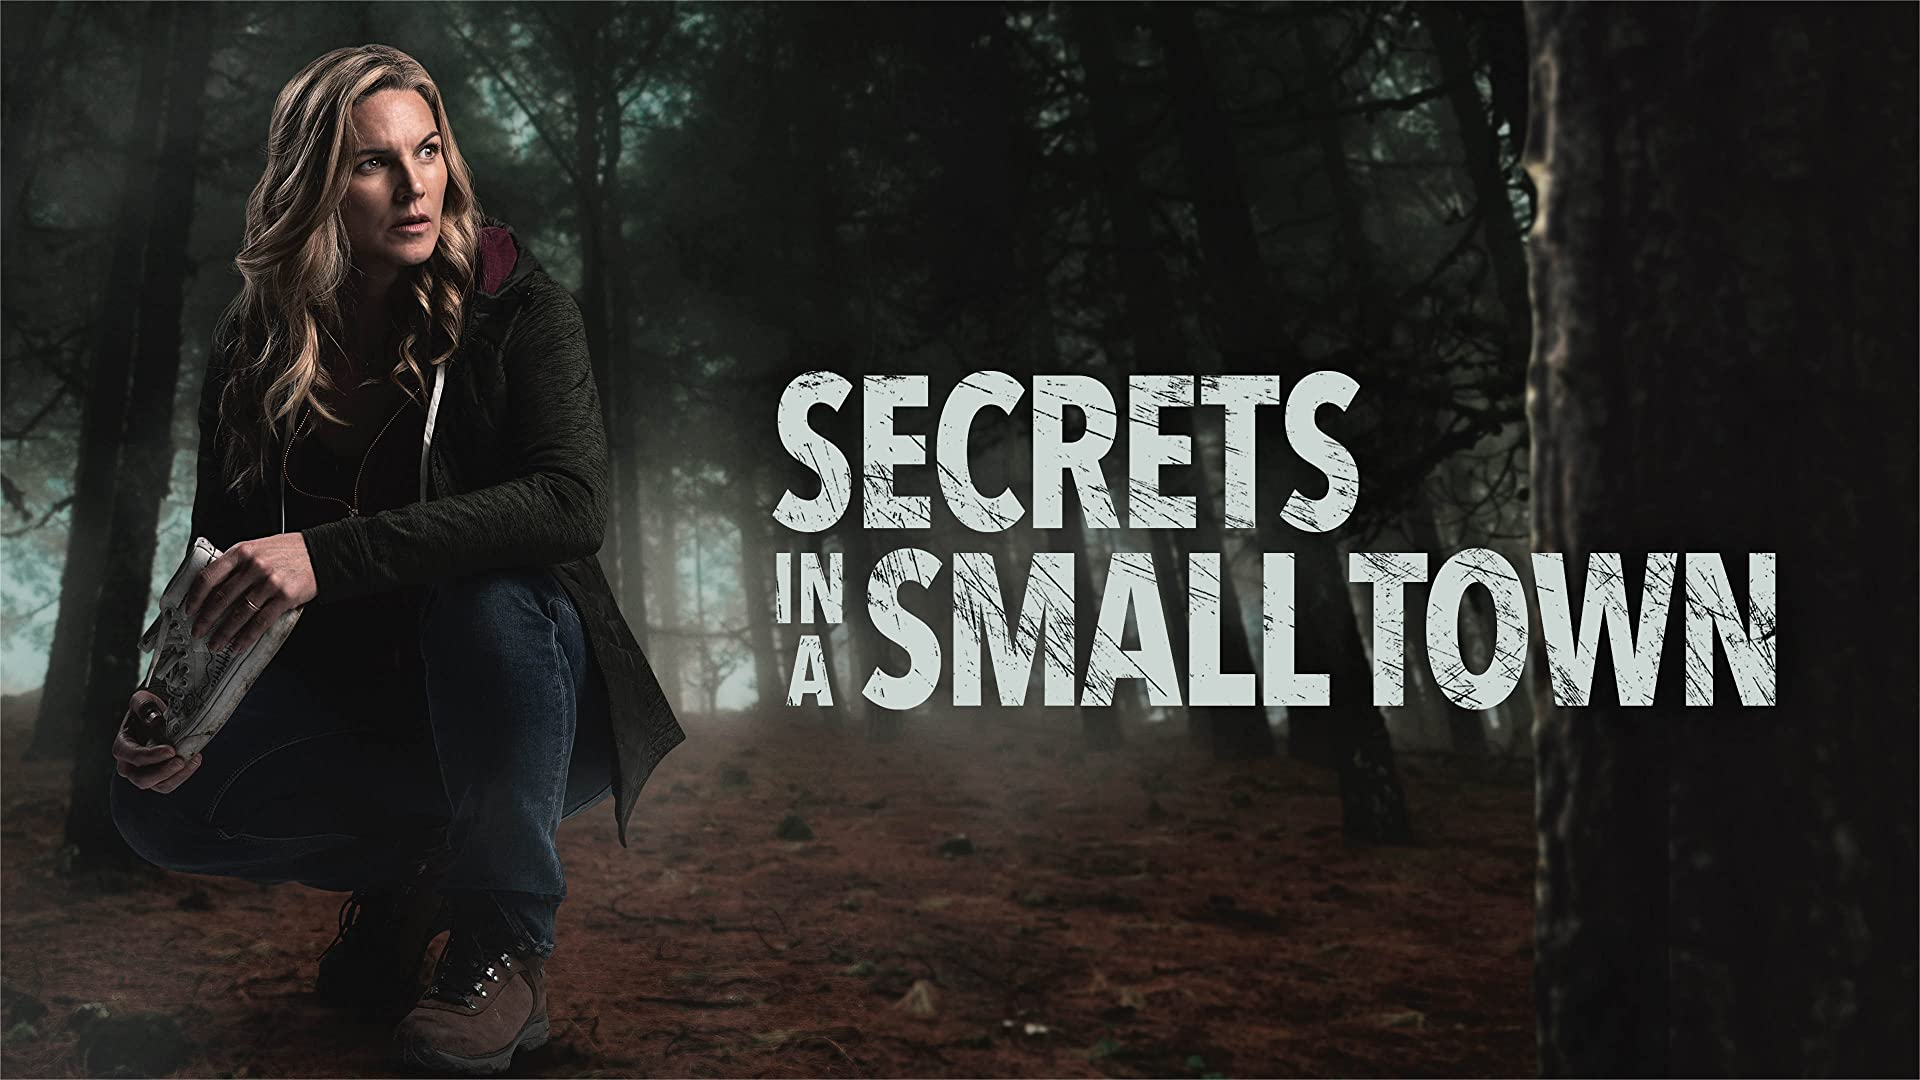 Secrets in a Small Town